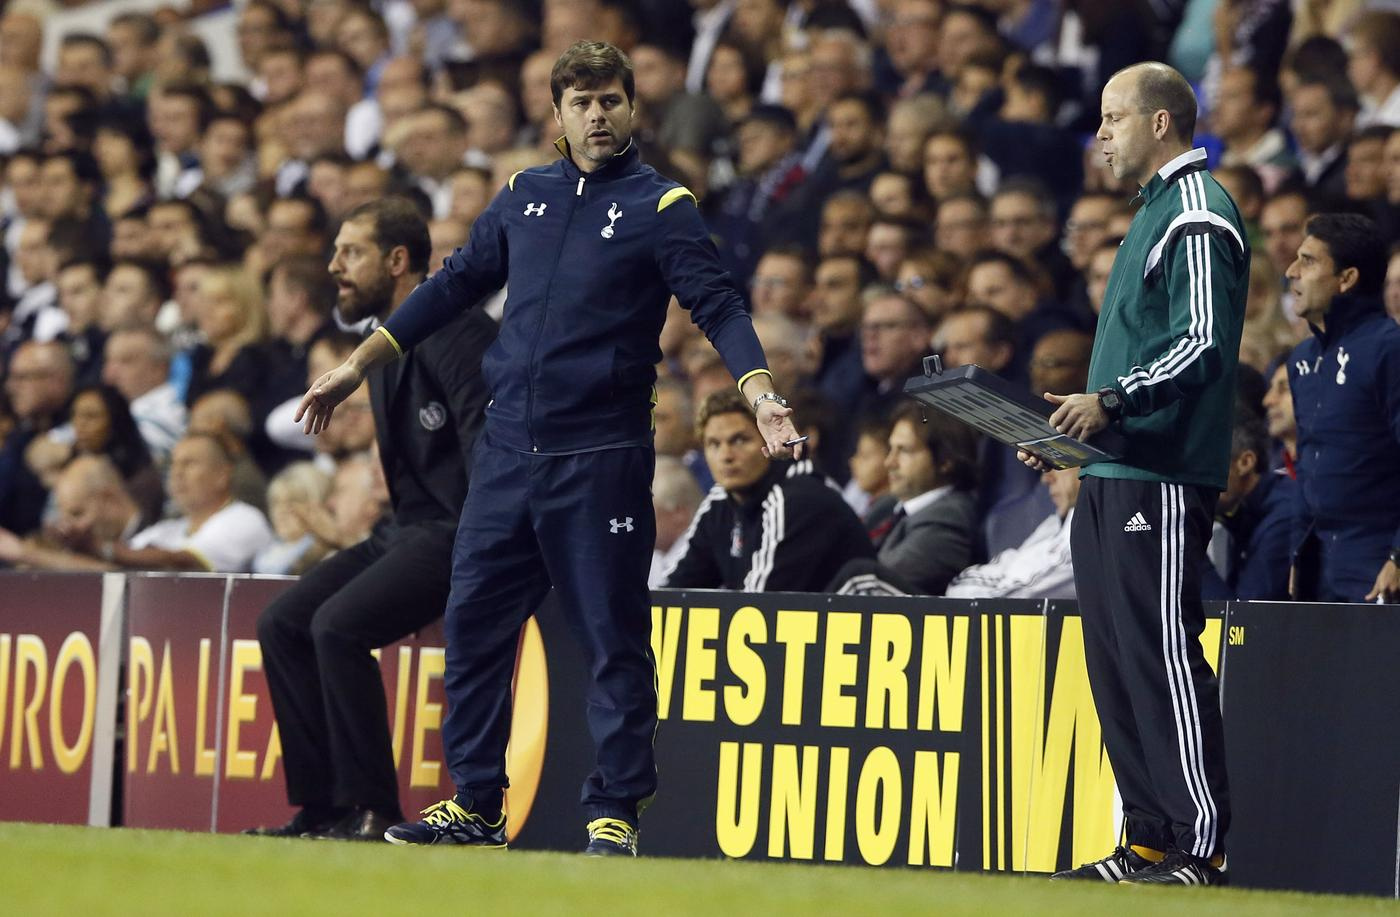 Mauricio Pochettino exiting Southampton to manage Tottenham Hotspur looks a good deal for Saints at moment